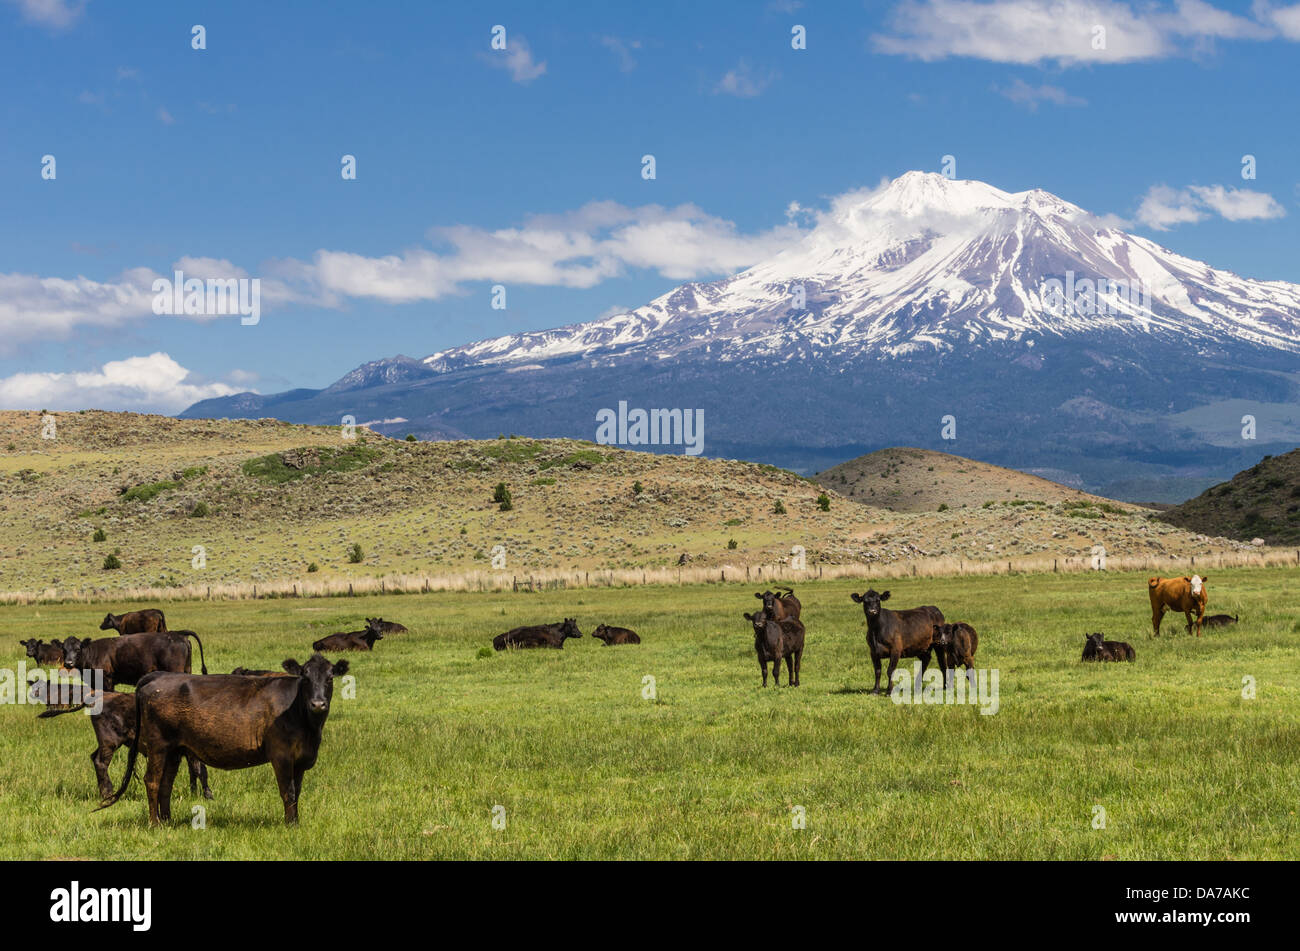 Weed California United States.  View of Mt Shasta showing pasture fields and a herd of cattle Stock Photo